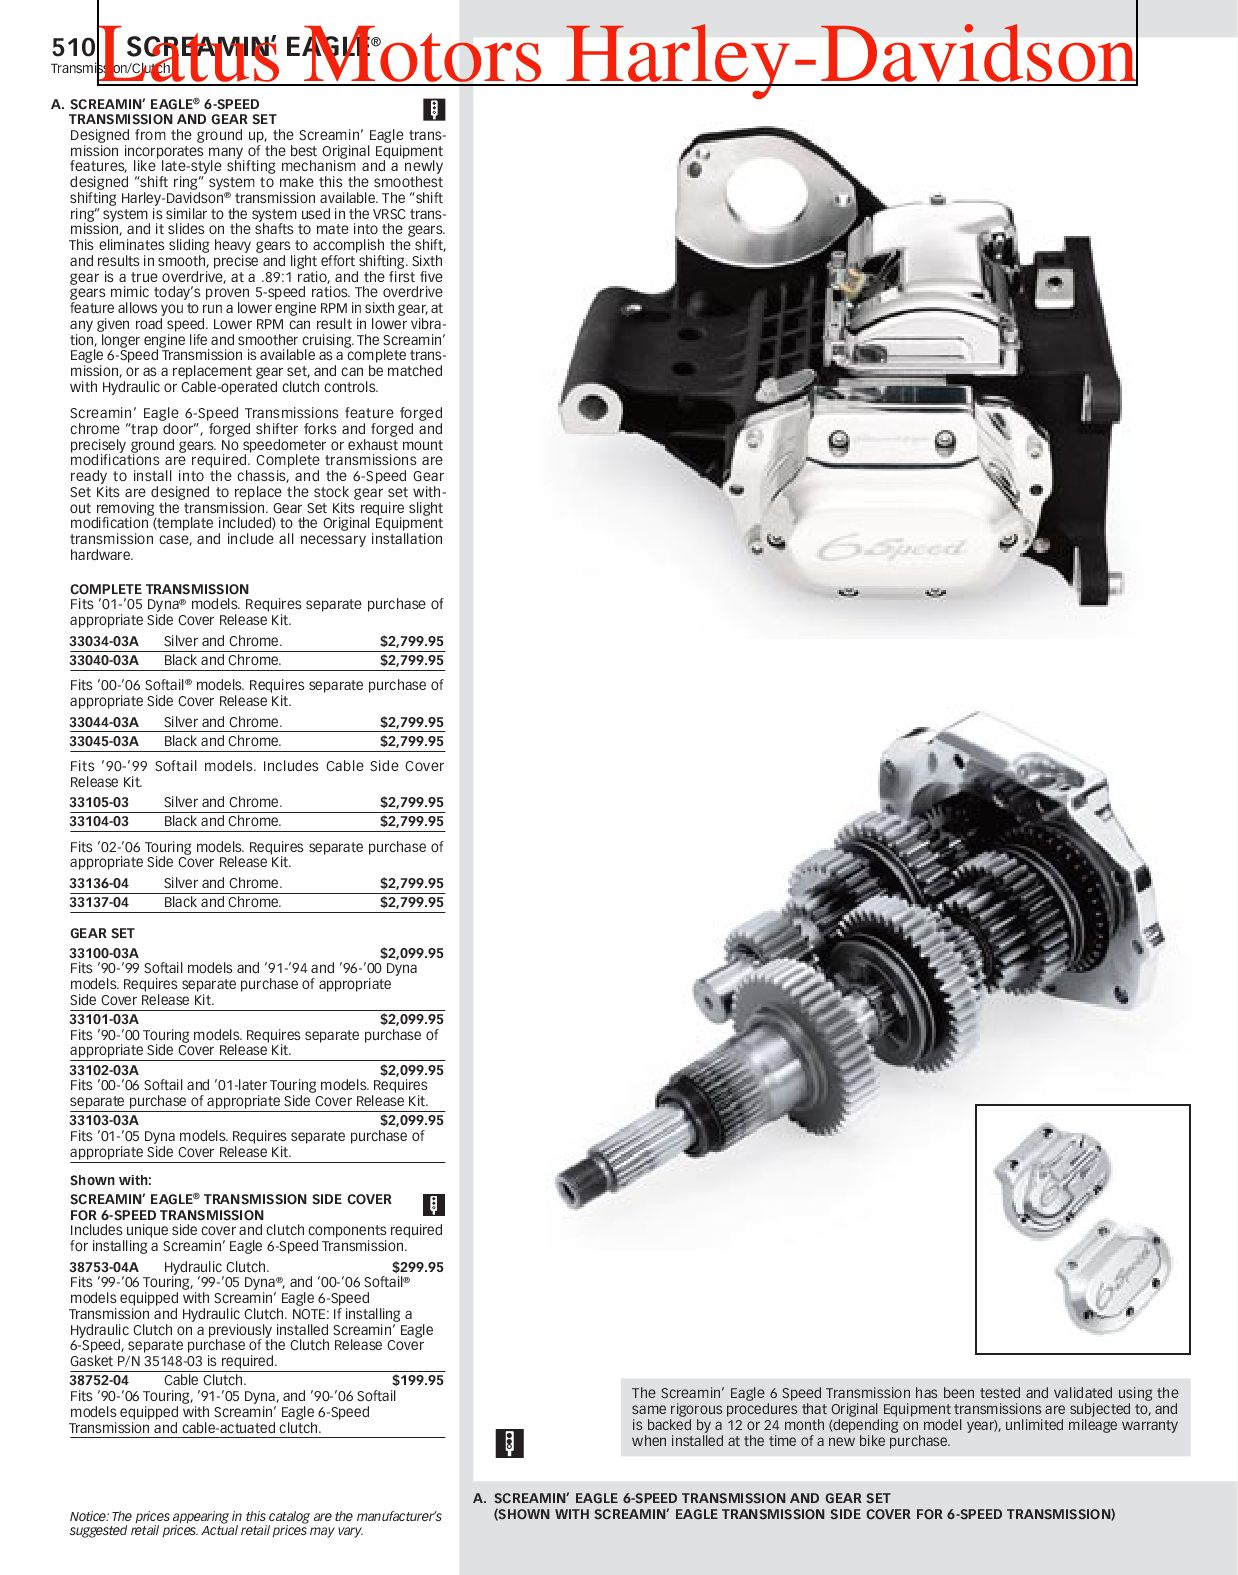 Harley Davidson 6 Speed Transmission Diagram : harley, davidson, speed, transmission, diagram, Harley-Davidson, Screamin', Eagle®, Parts, Accessories, Catalog, Harley-, Davidson, Portland, Issuu